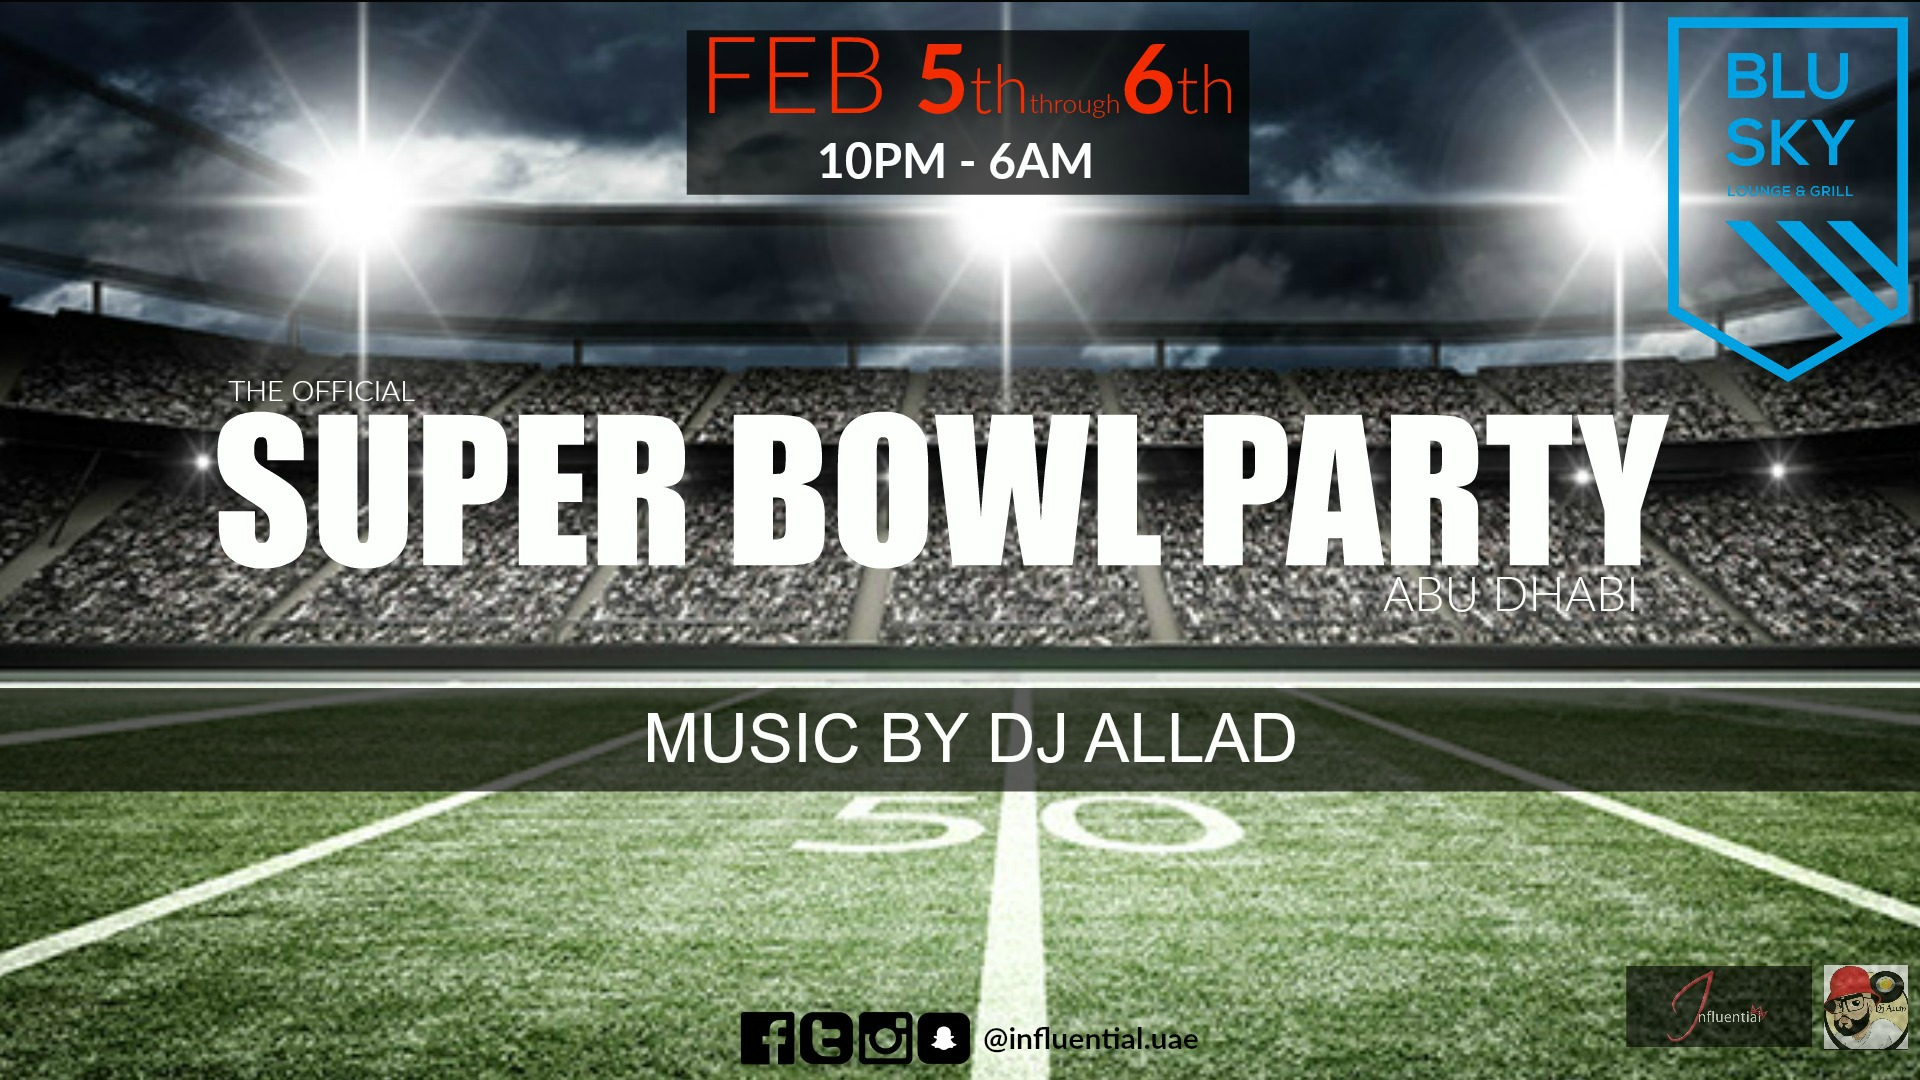 The official super bowl party @ Blu Sky